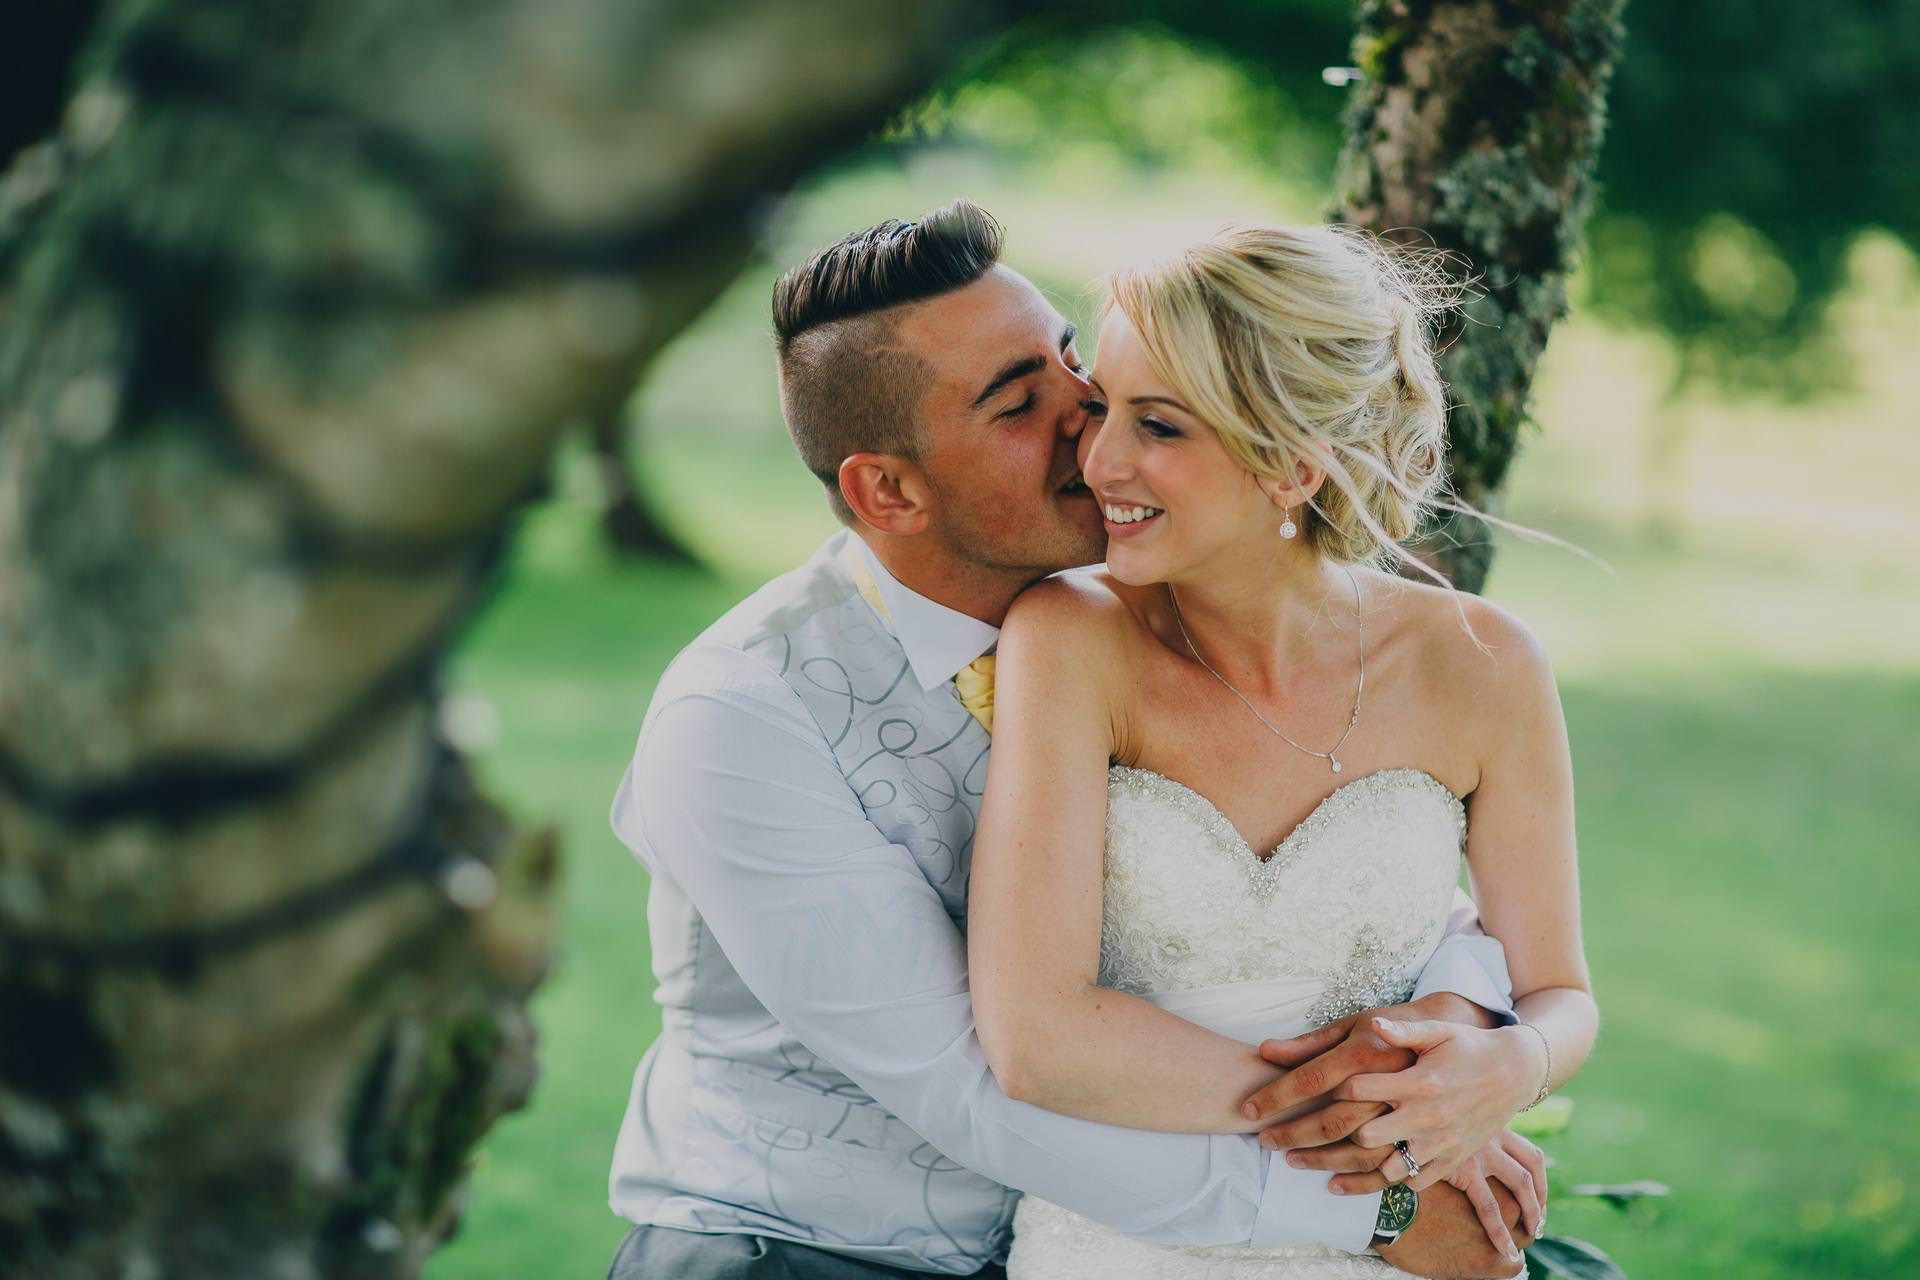 Redruth Wedding Photographer in Cornwall